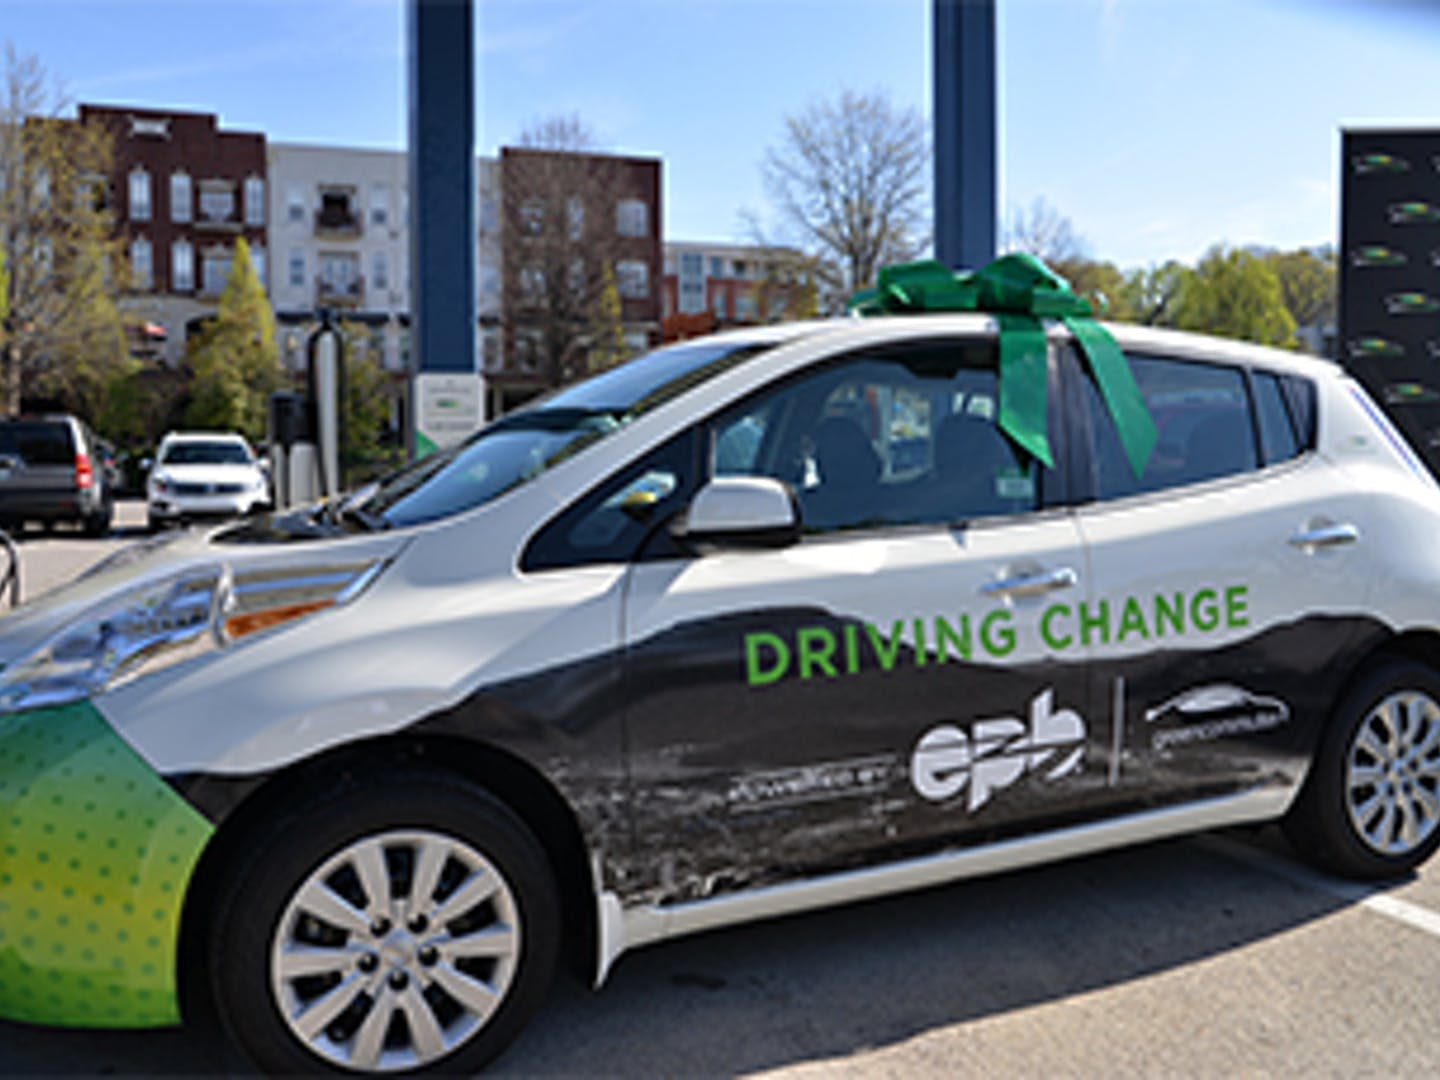 chattanooga-accelerates-sustainable-mobility-with-epb-driving-change-vehicles.jpeg